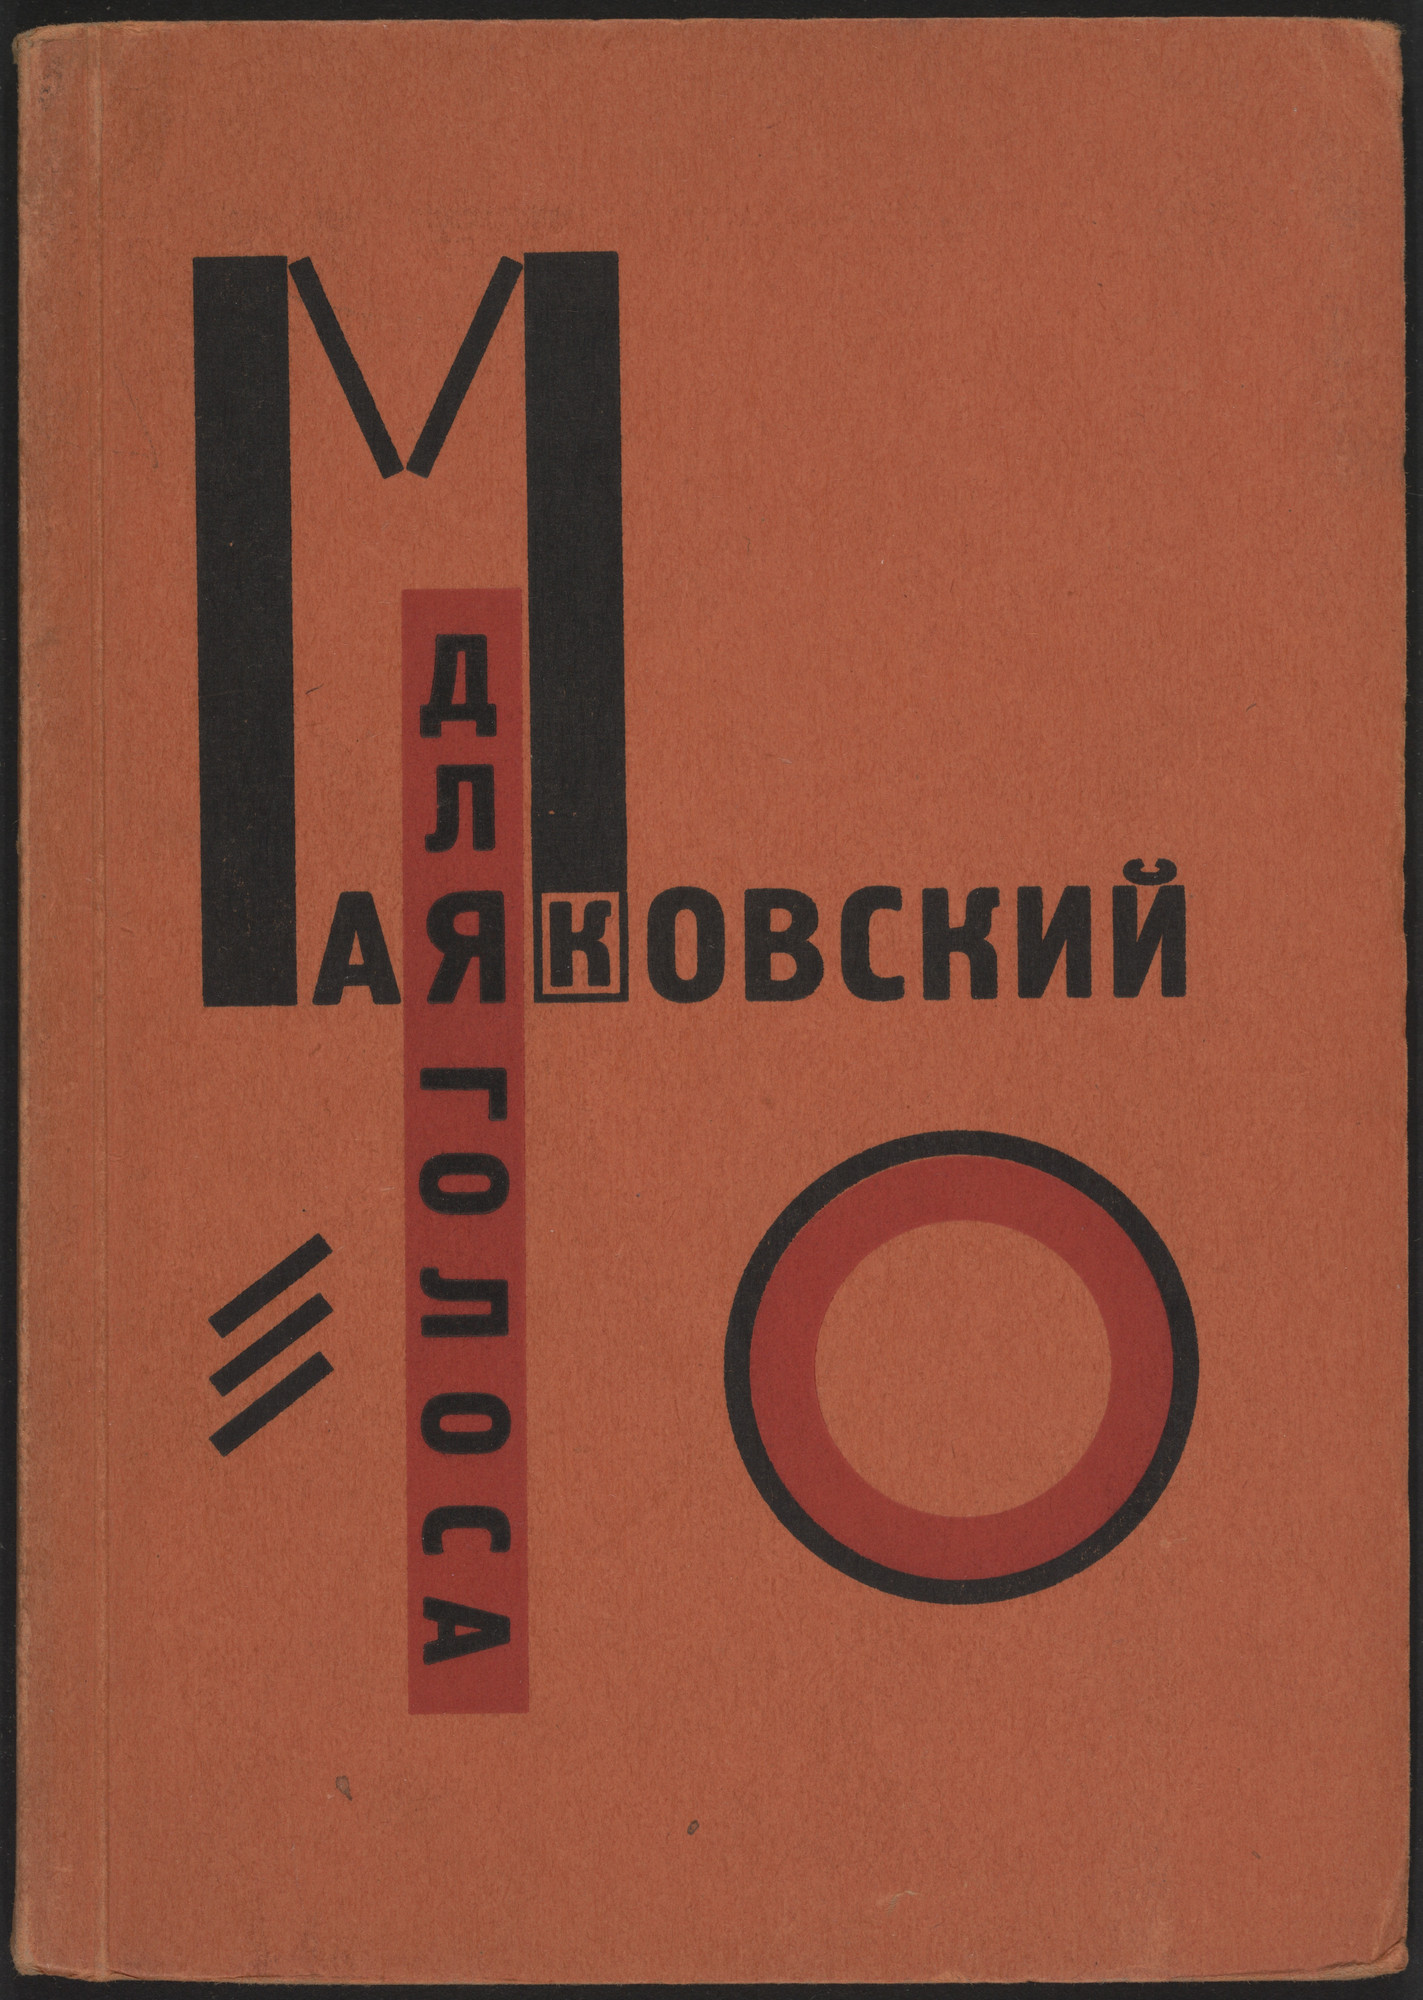 El Lissitzky. Dlia golosa (For the Voice). 1923